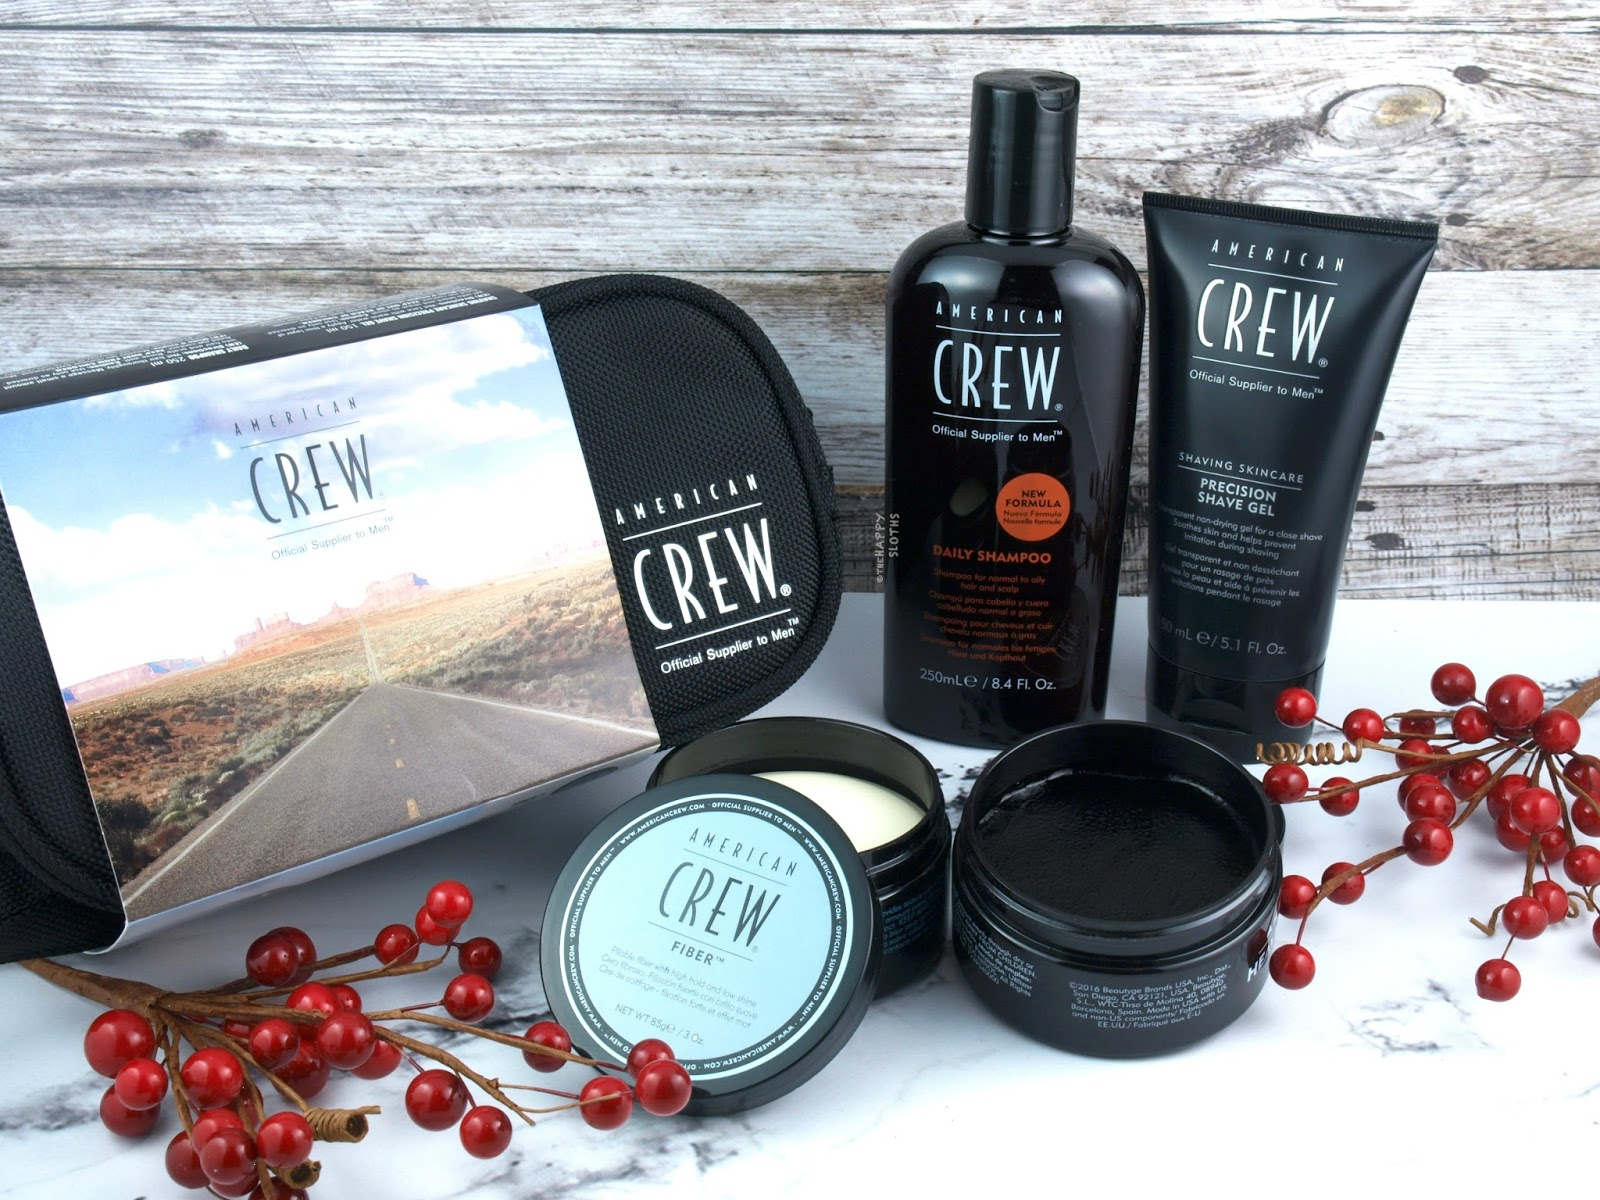 Holiday Gift for Men | American Crew Travel Pack: Review + GIVEAWAY